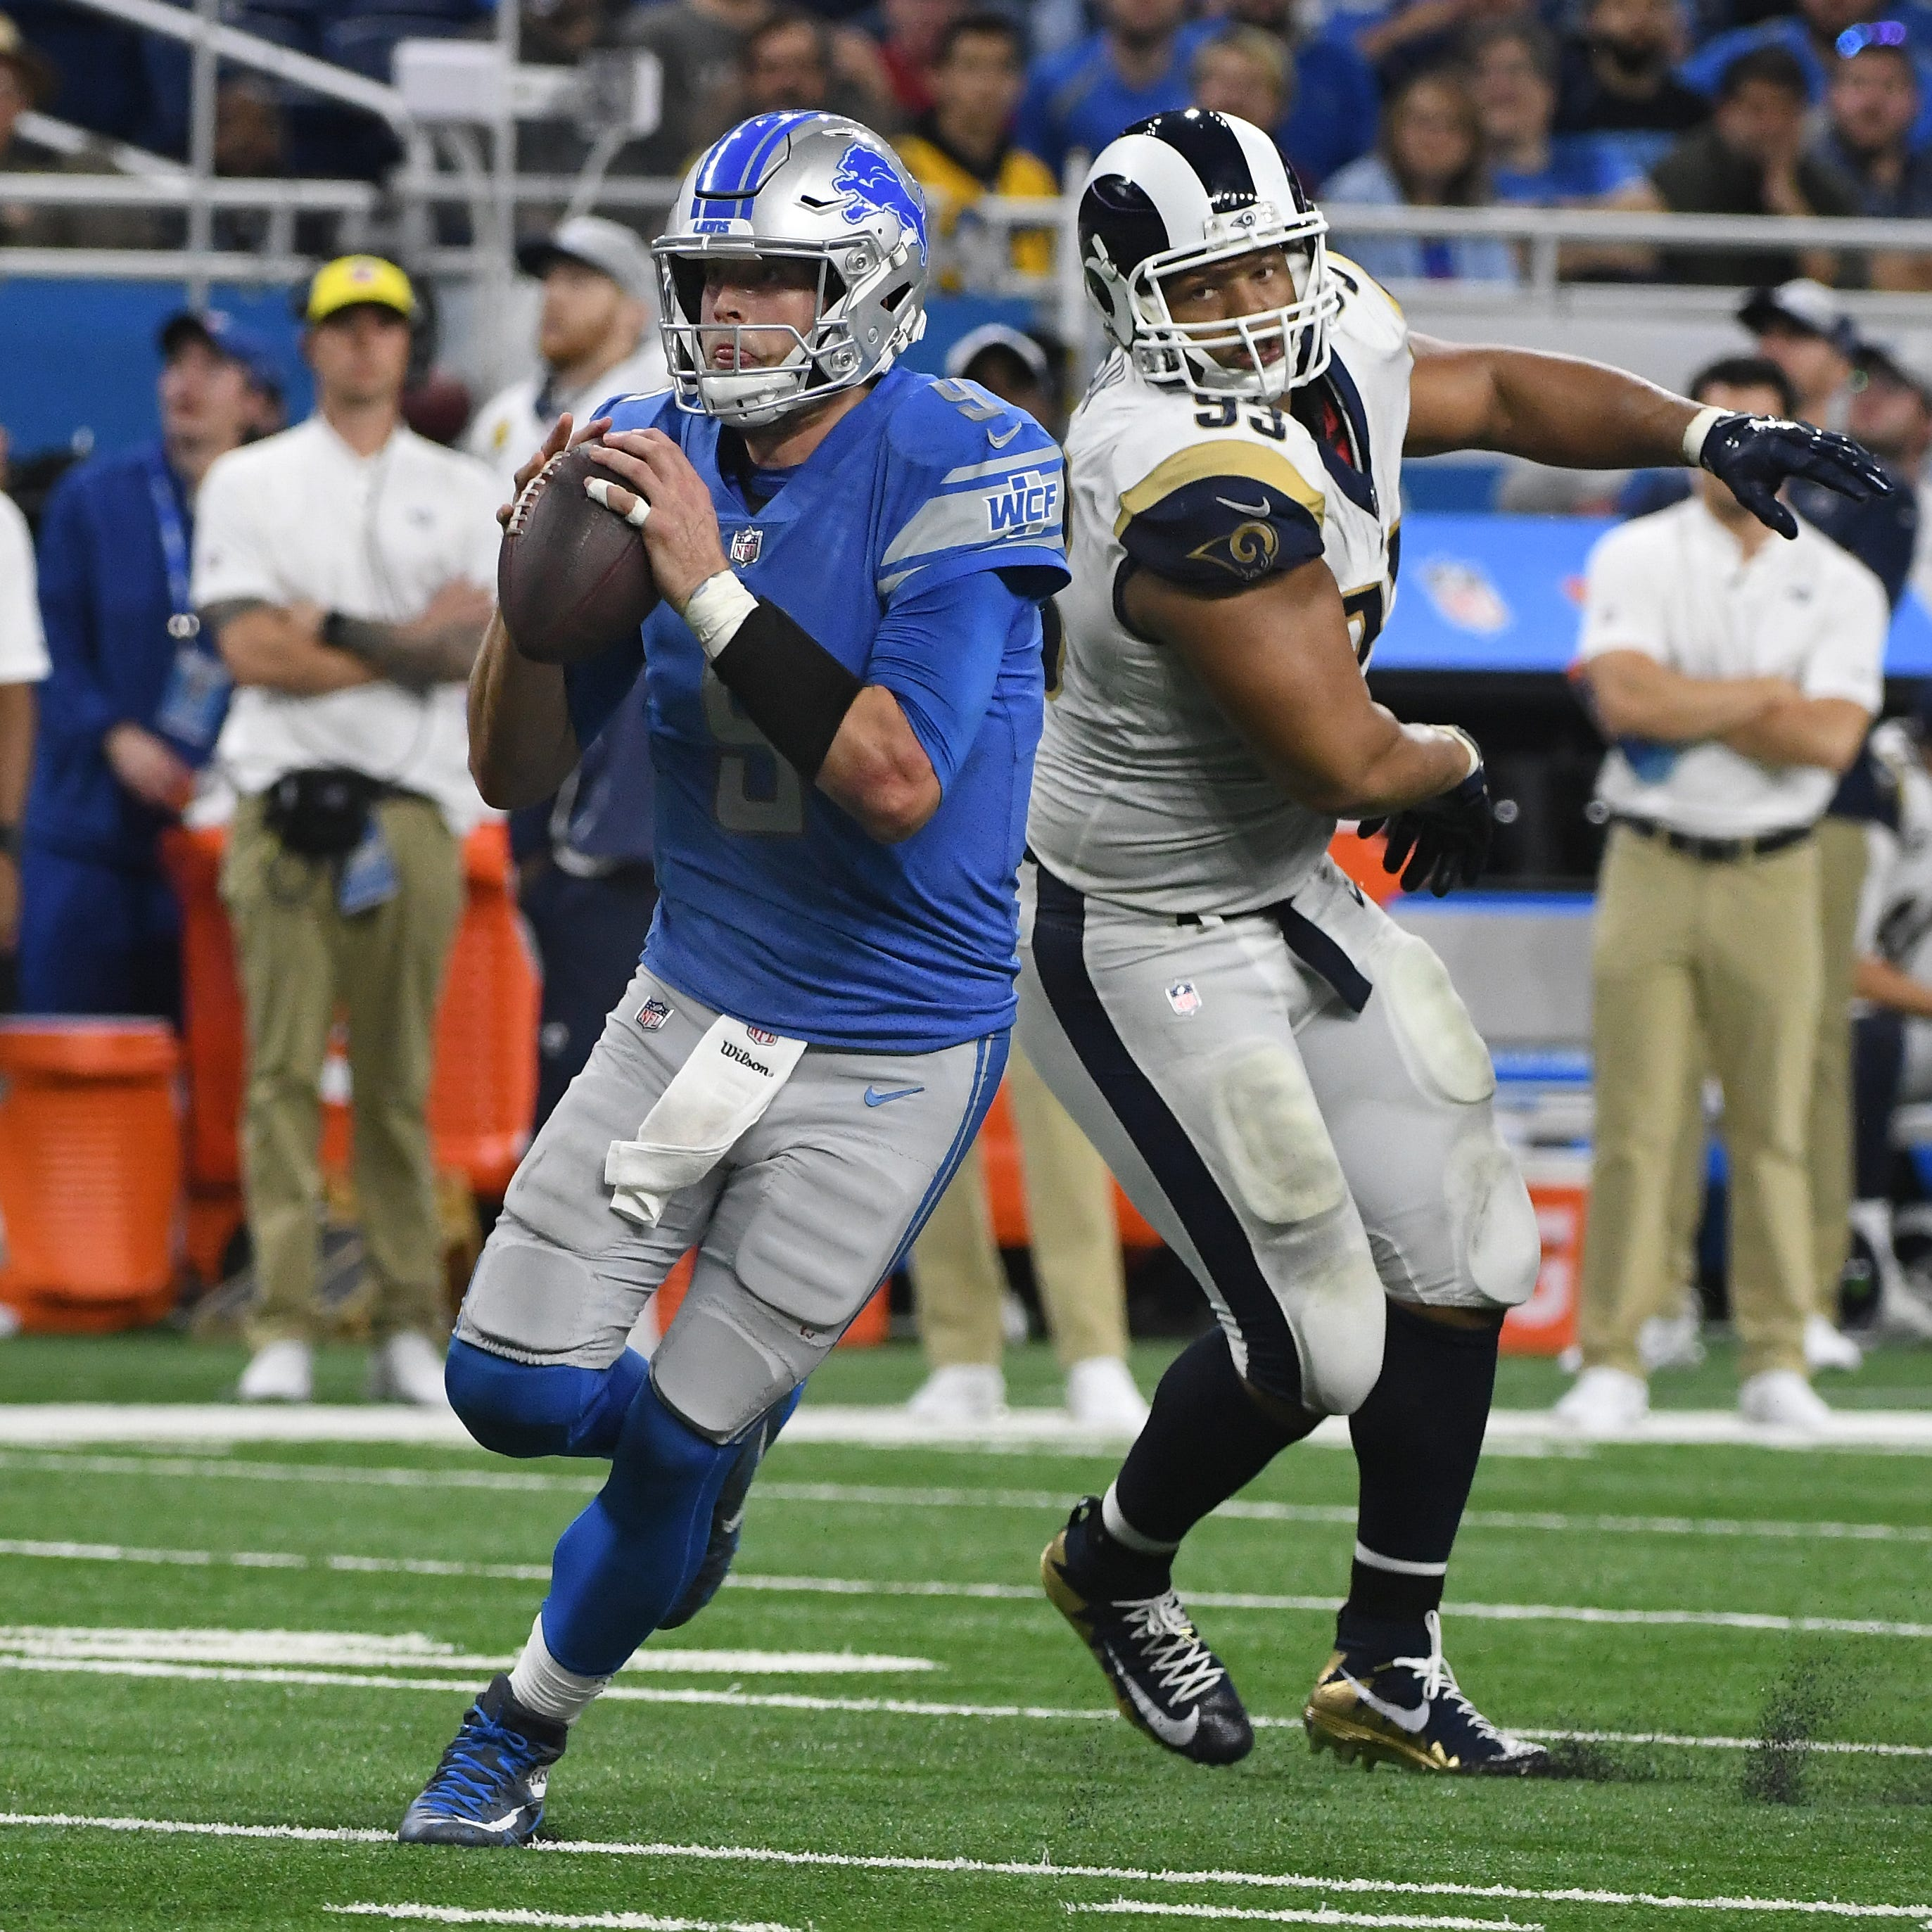 Pass game preview, Tavai's use and other things to follow in Lions OTAs